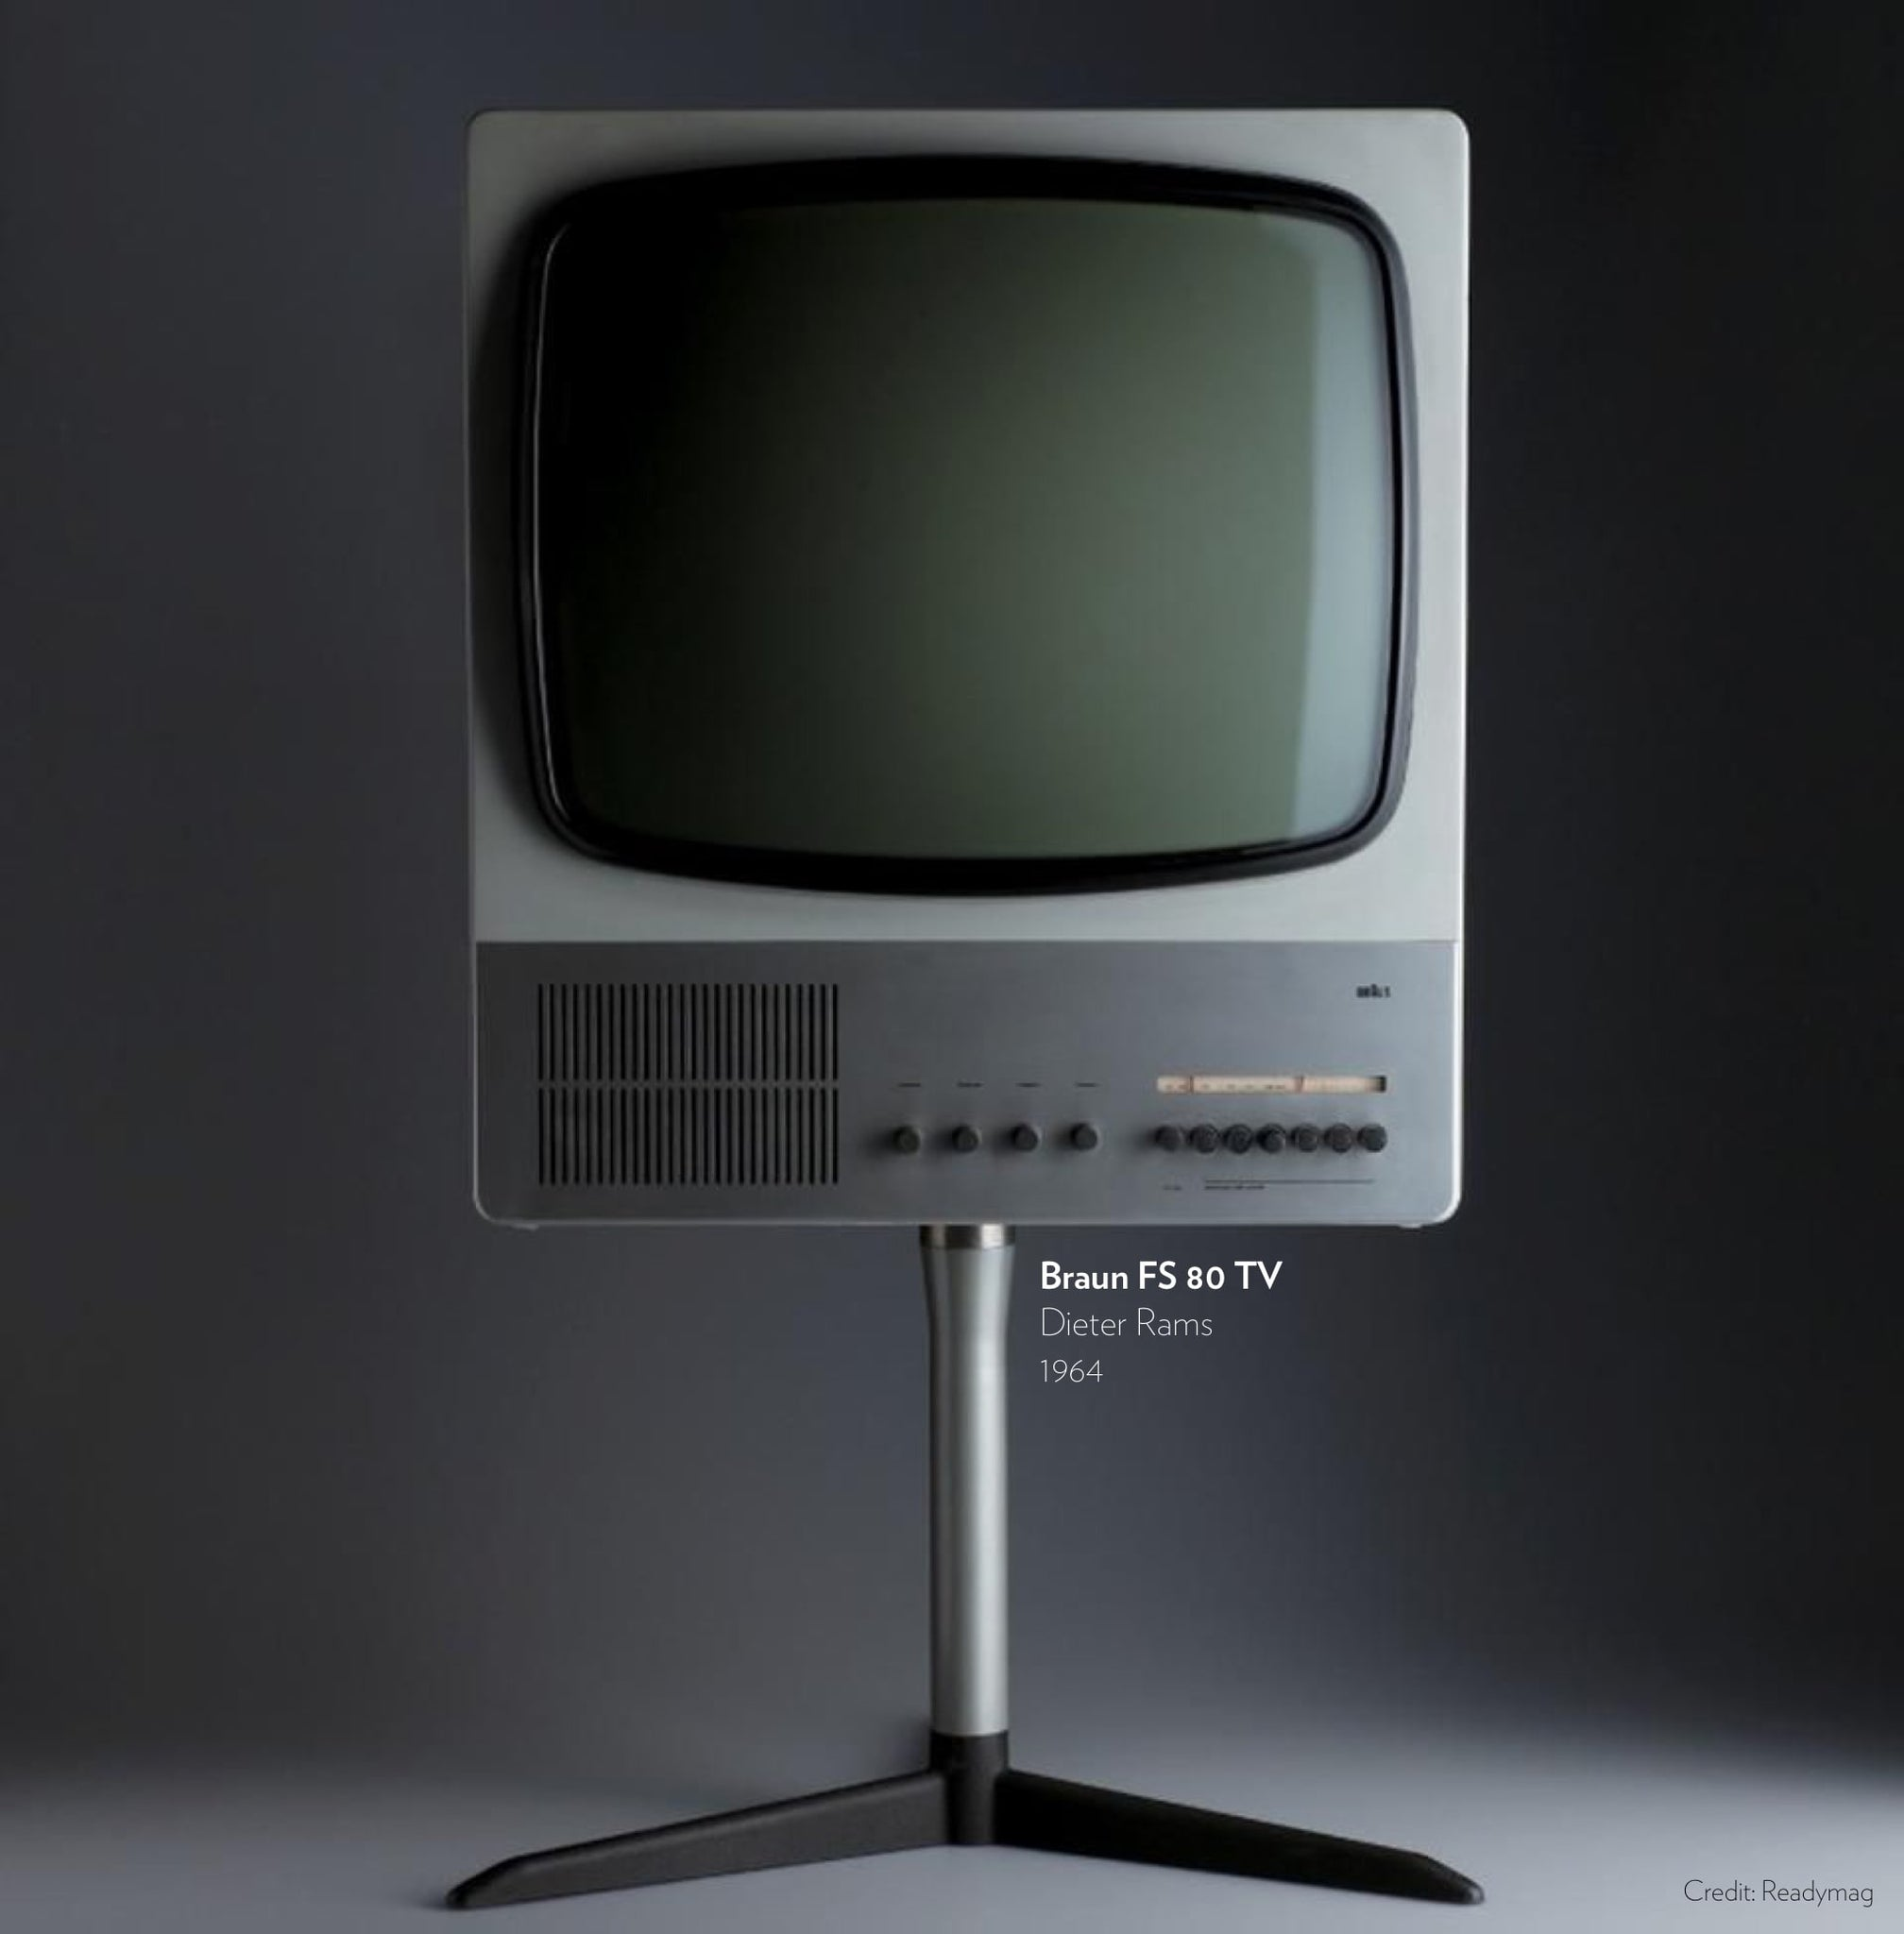 Braun FS 80 TV designed by Dieter Rams in 1964.